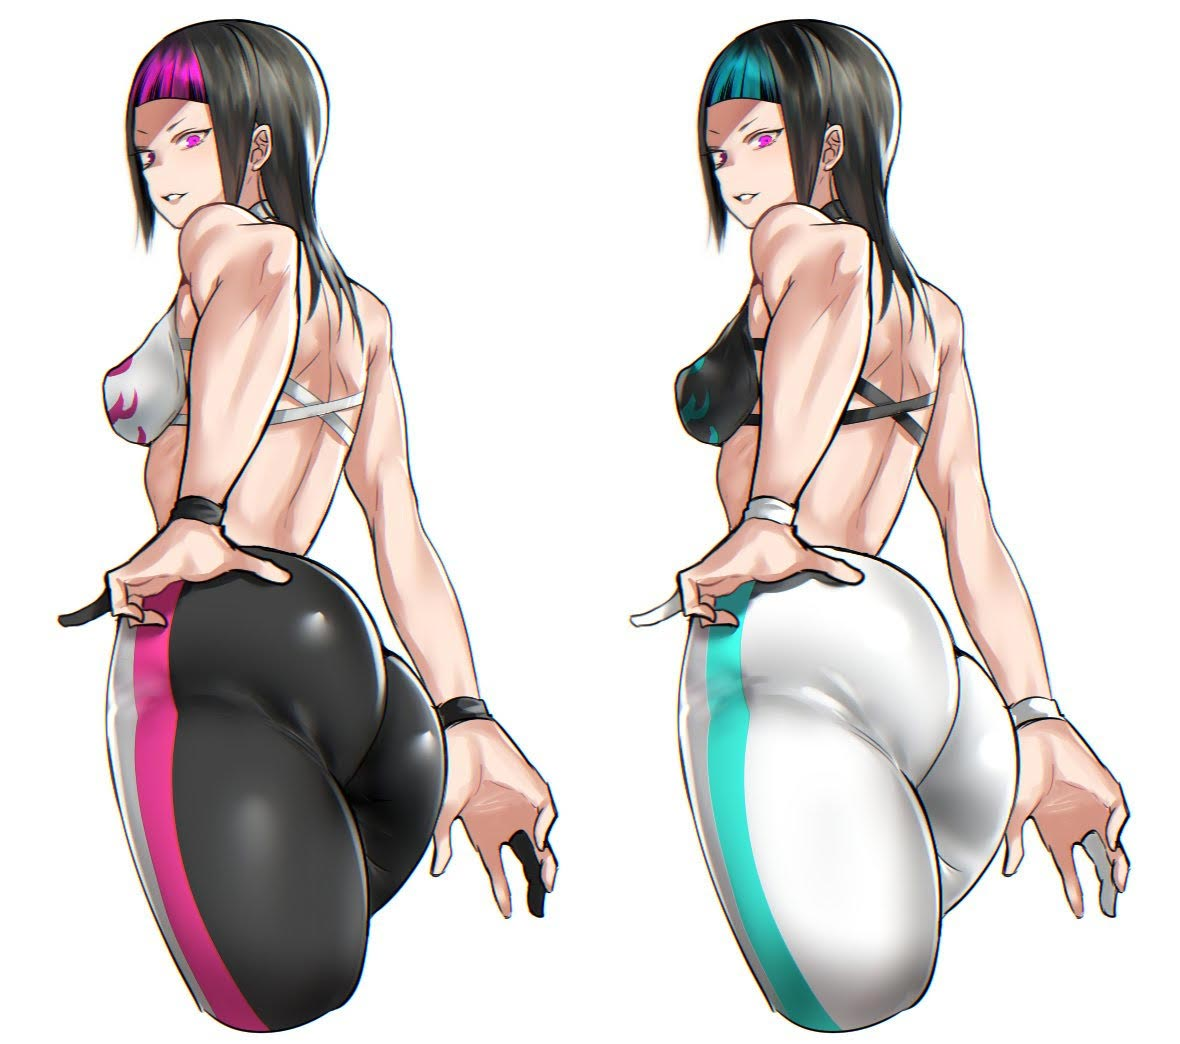 more of Mememenome's Street Fighter artwork 12 out of 15 image gallery